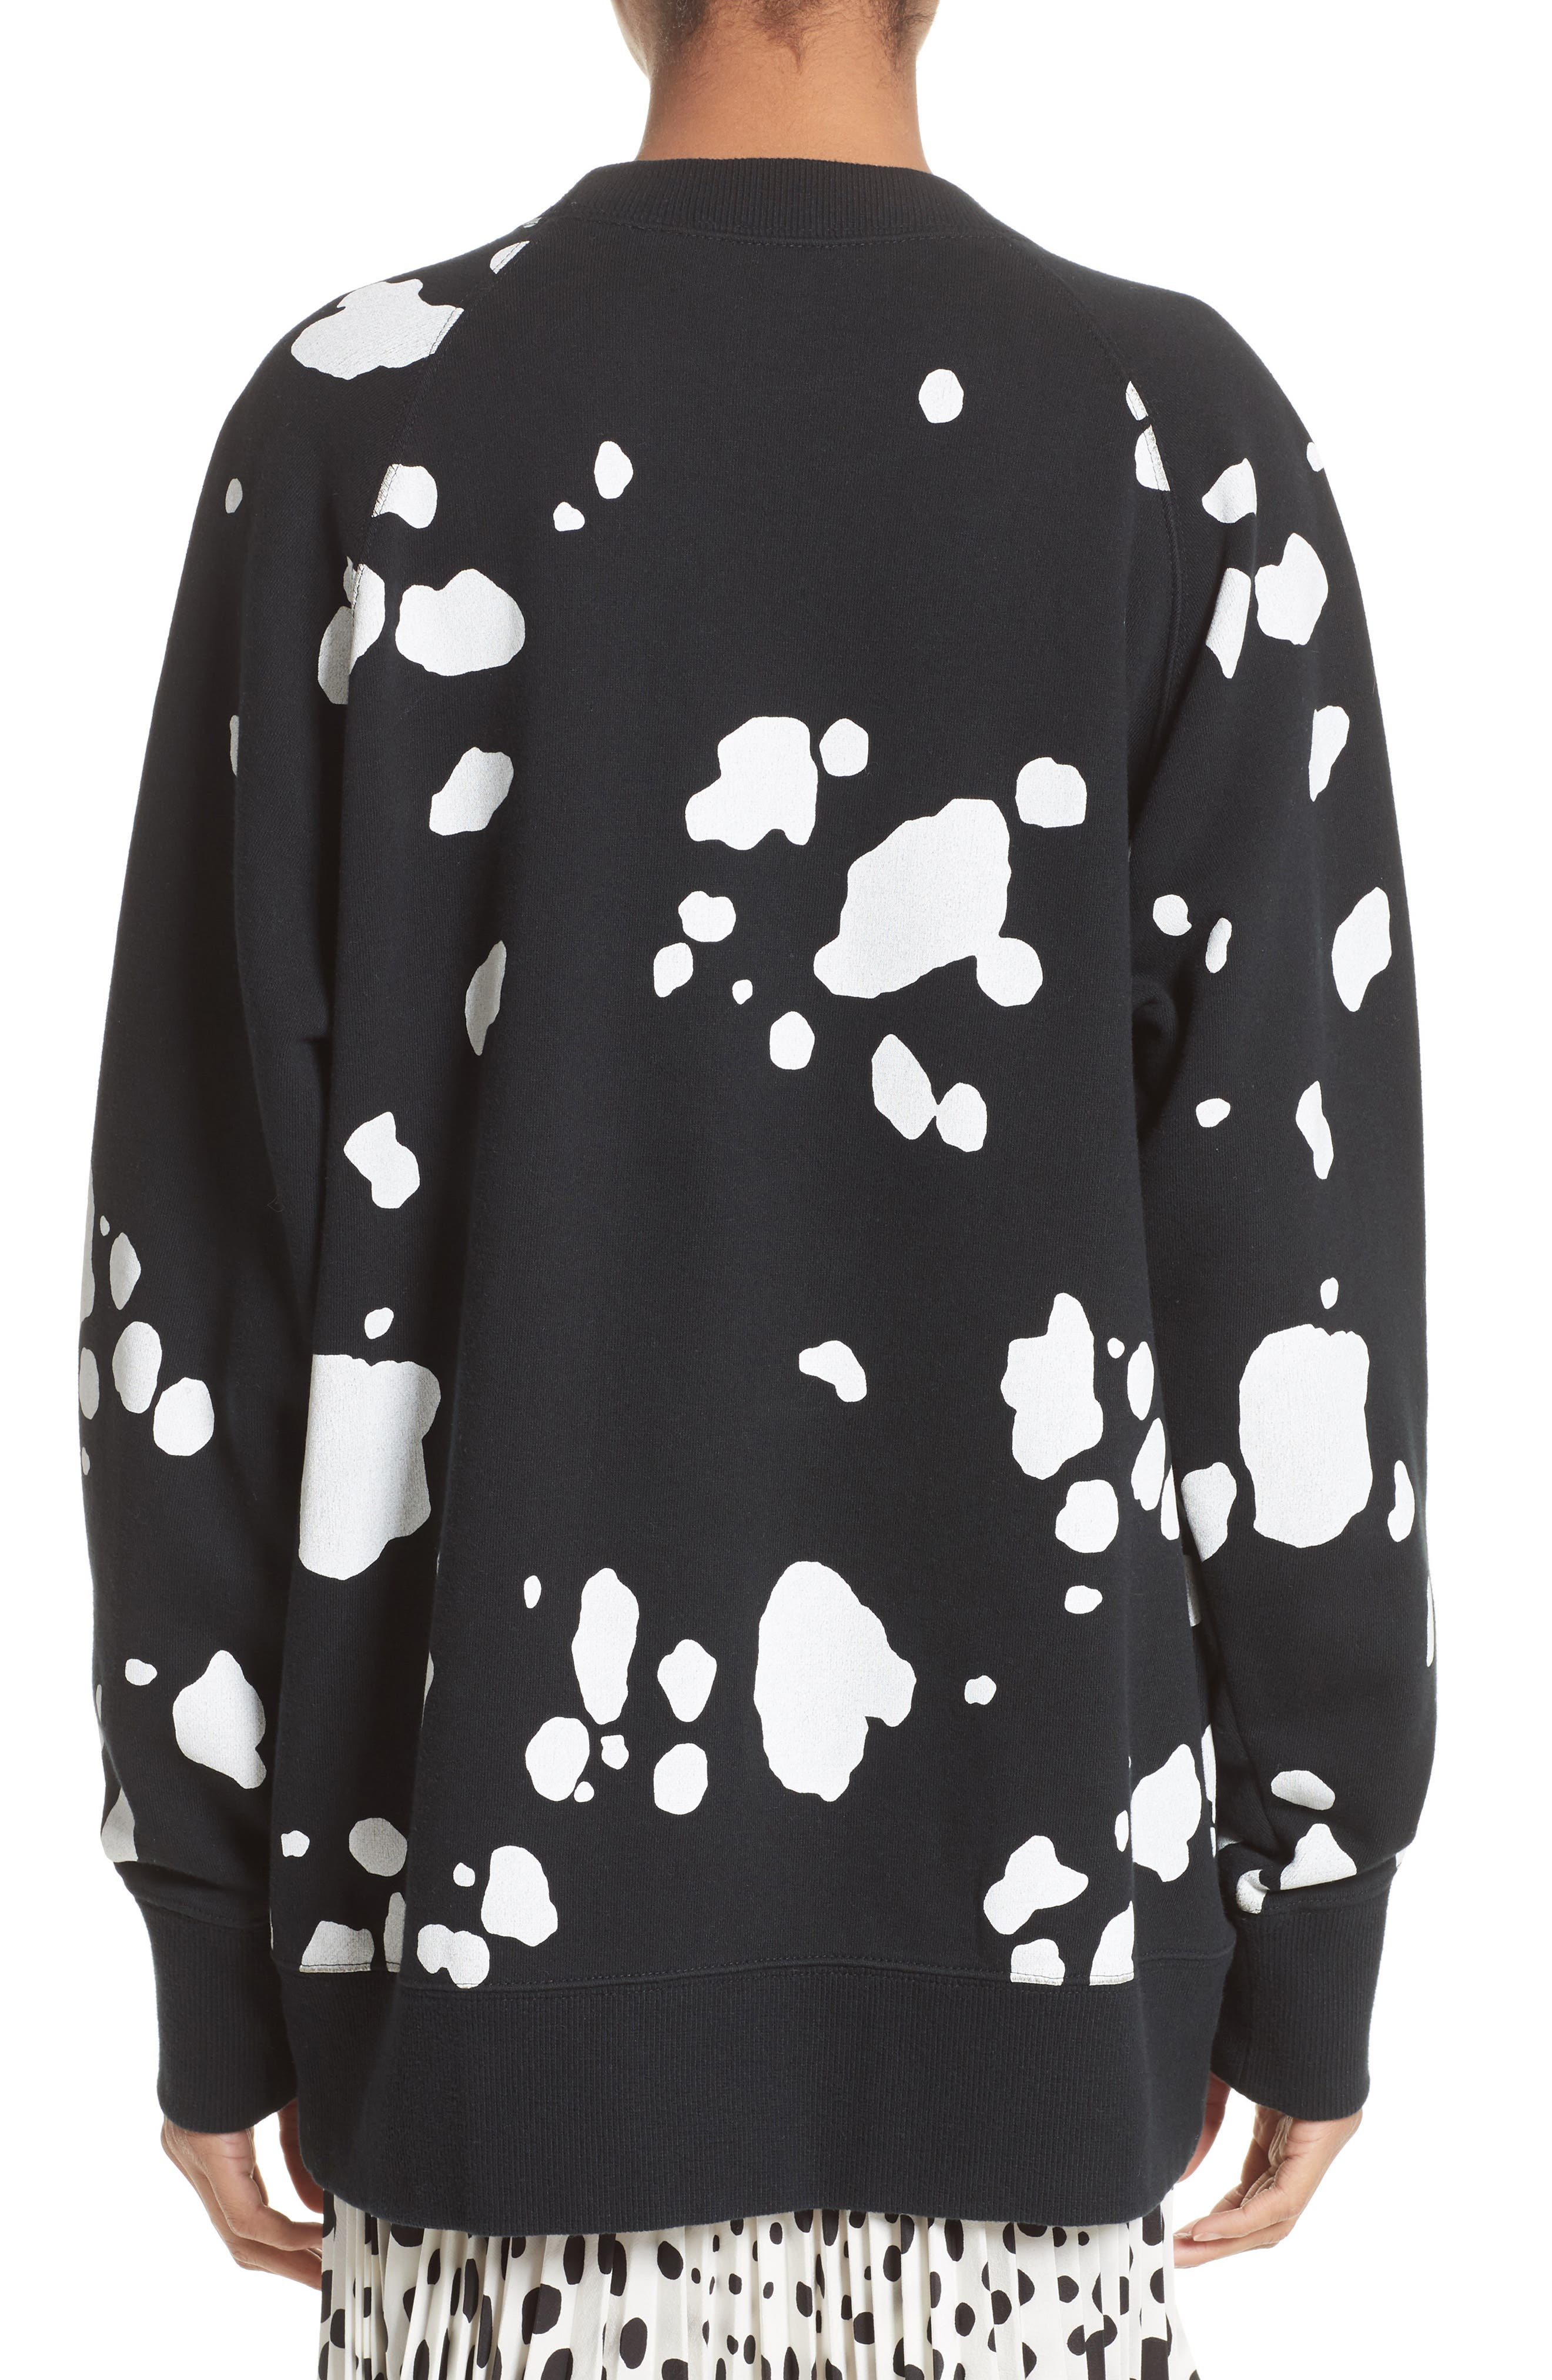 Dalmatian Print Sweatshirt,                             Alternate thumbnail 2, color,                             Black Multi